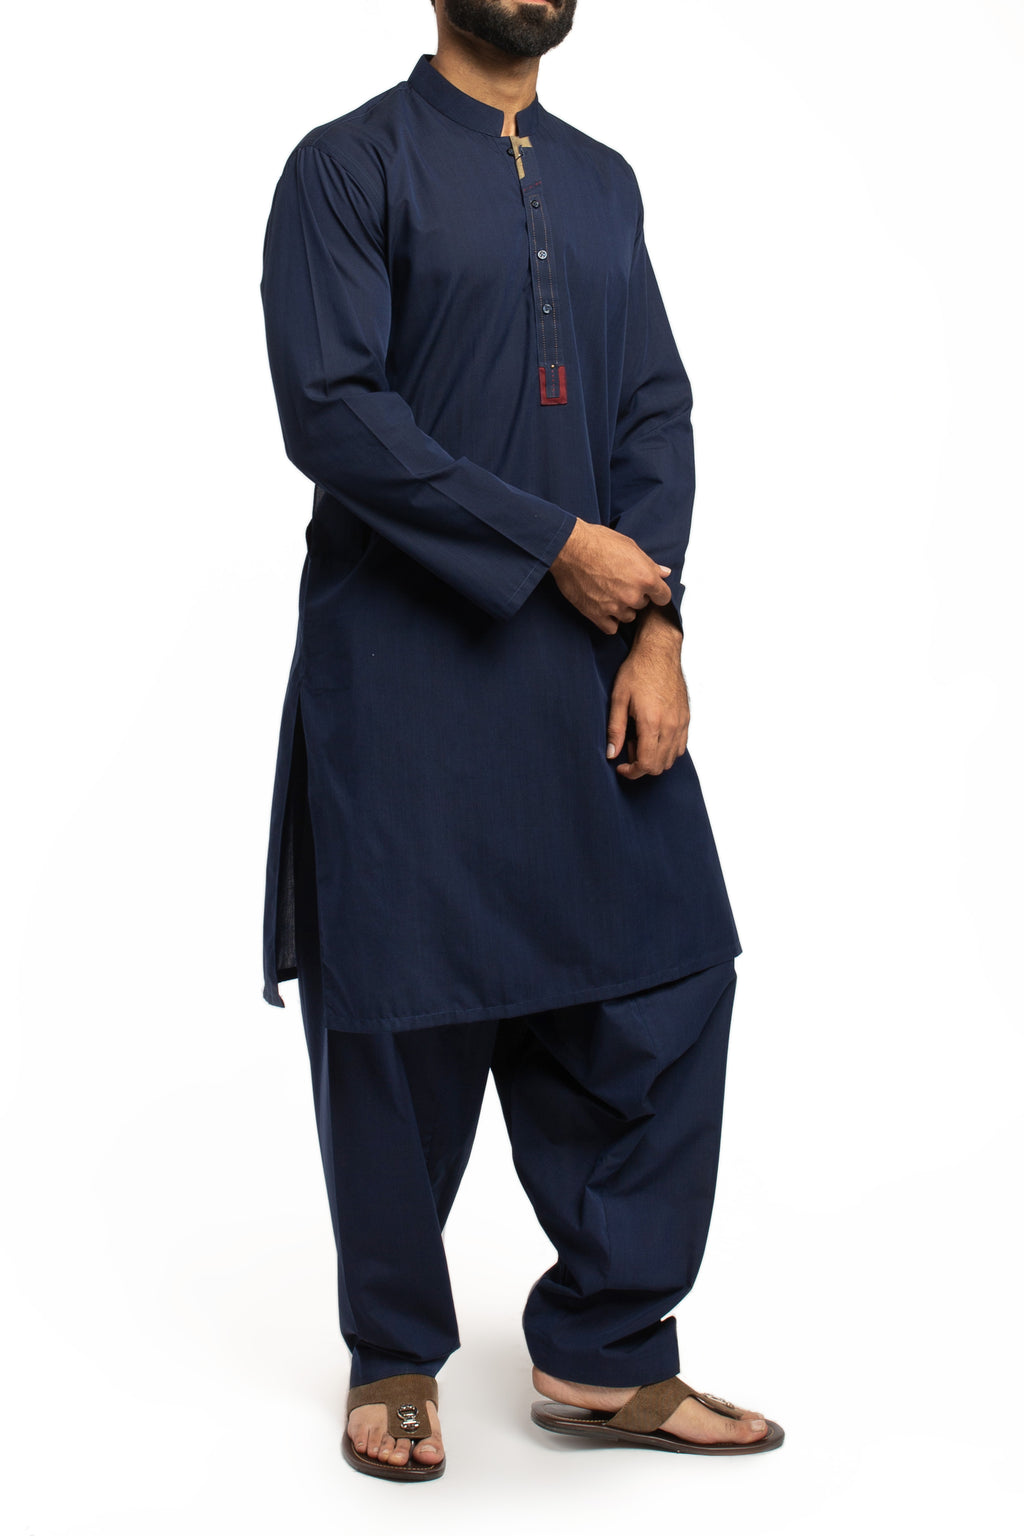 Image of Men Men Shalwar Qameez in Blue SKU: RQ-40172-Small-Blue